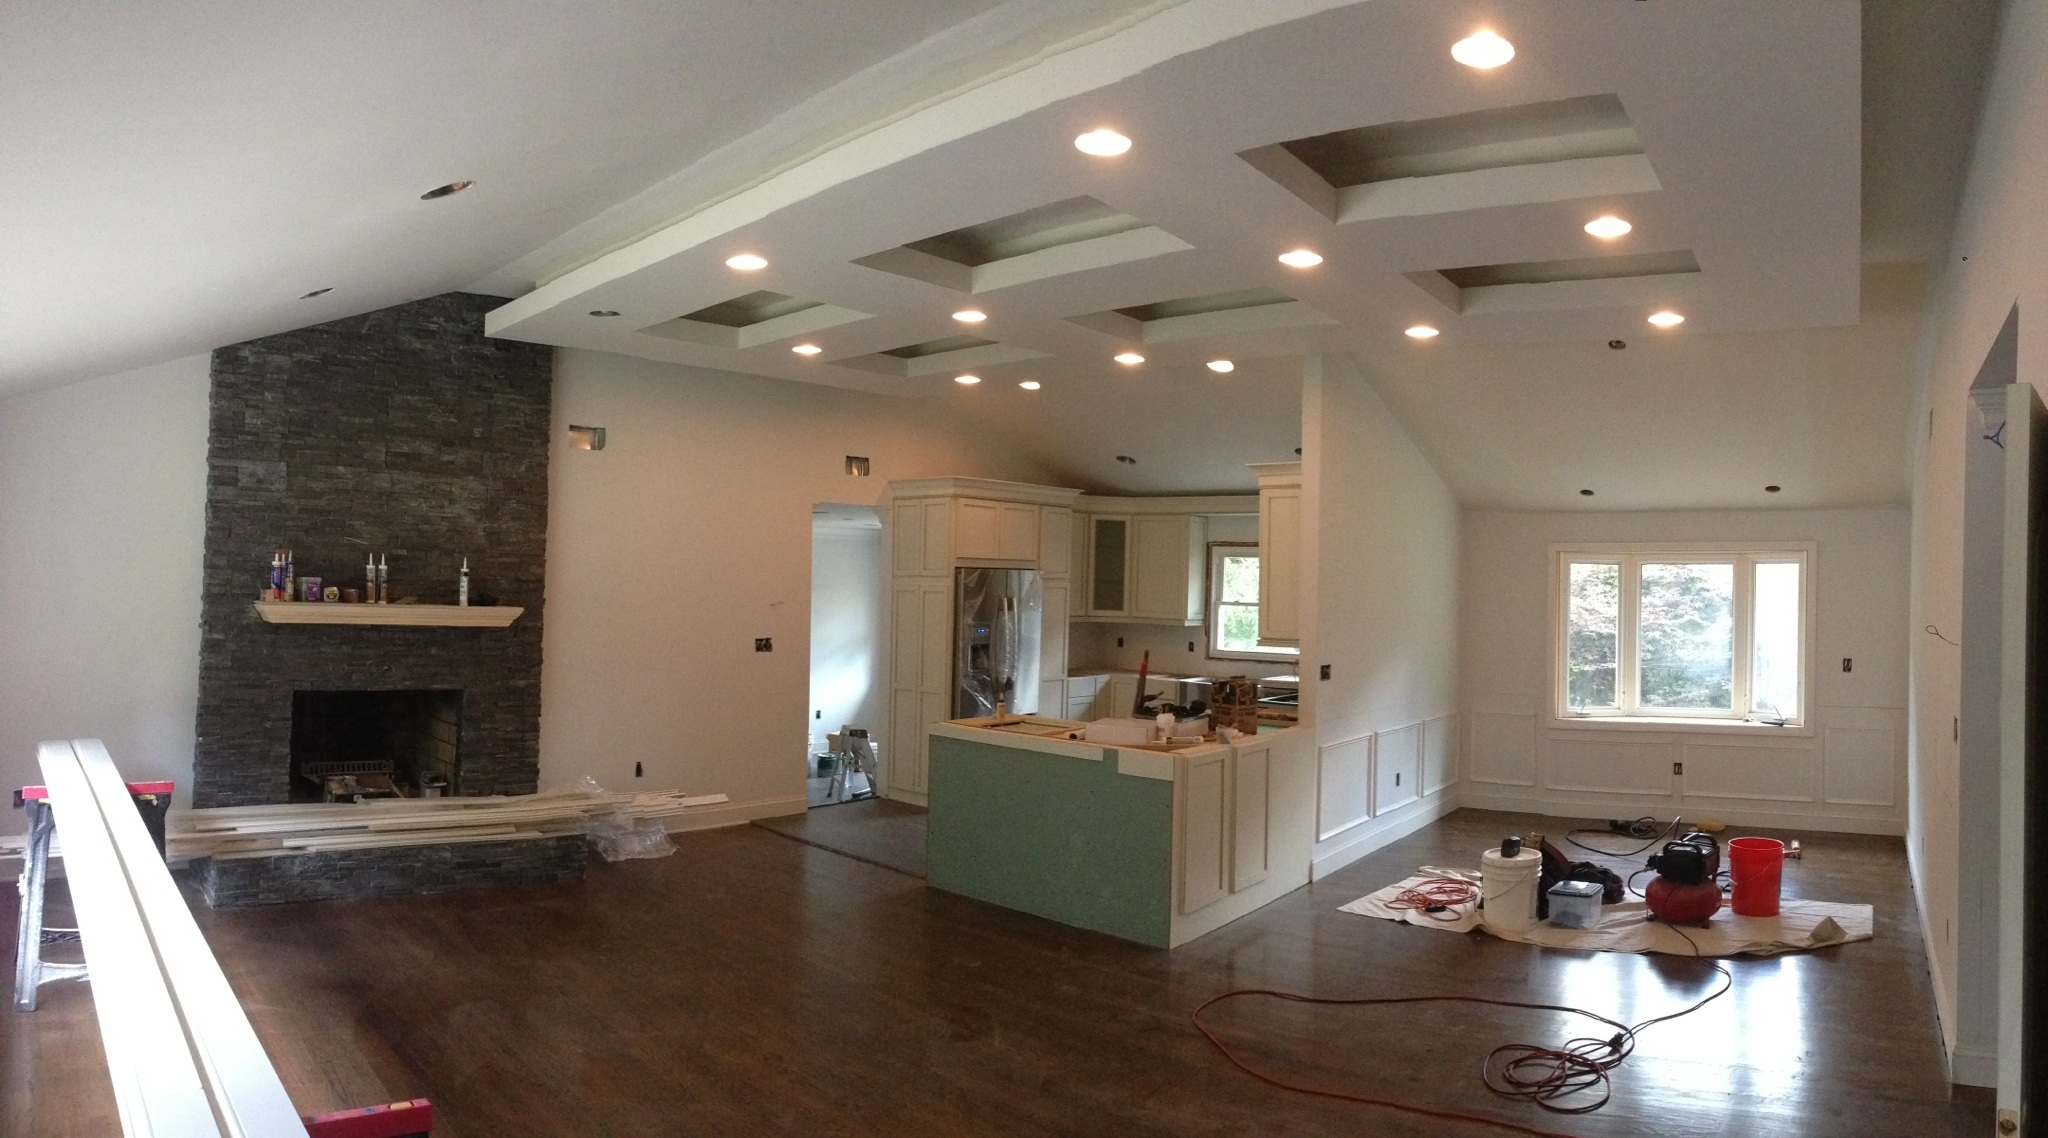 2016 Guide To Home Remodeling In And Around Central Valley